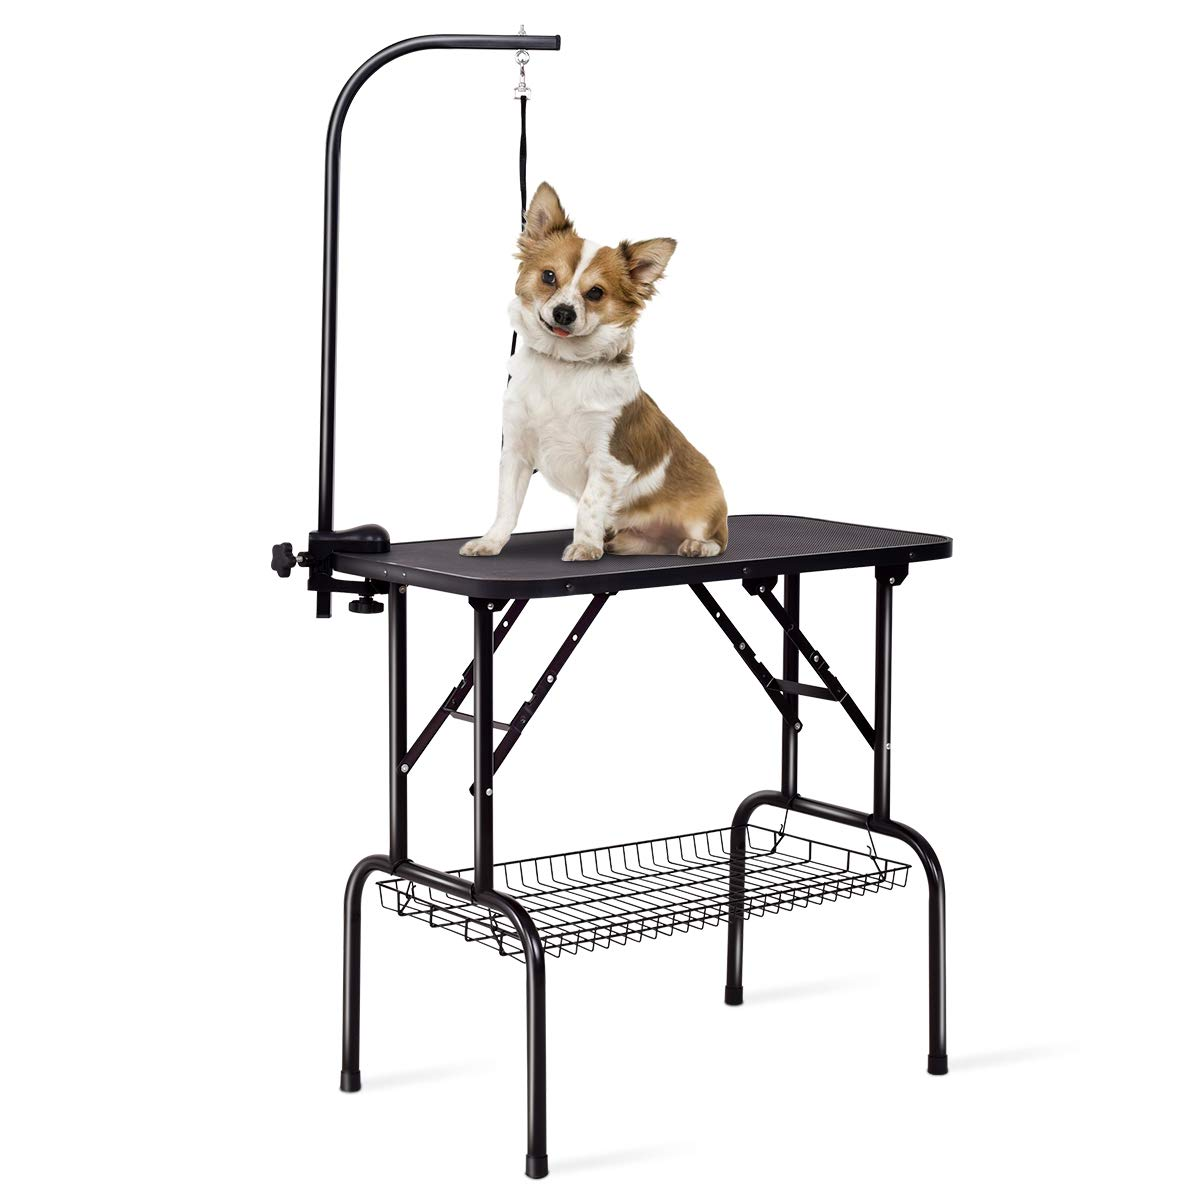 Giantex 32'' Pet Grooming Table for Dogs Cats, Foldable Dog Grooming Station, Height Adjustable Arm Clamp, Hanging Noose, Mesh Tray, Non-Slip Rubber Top, Support up to 220lbs